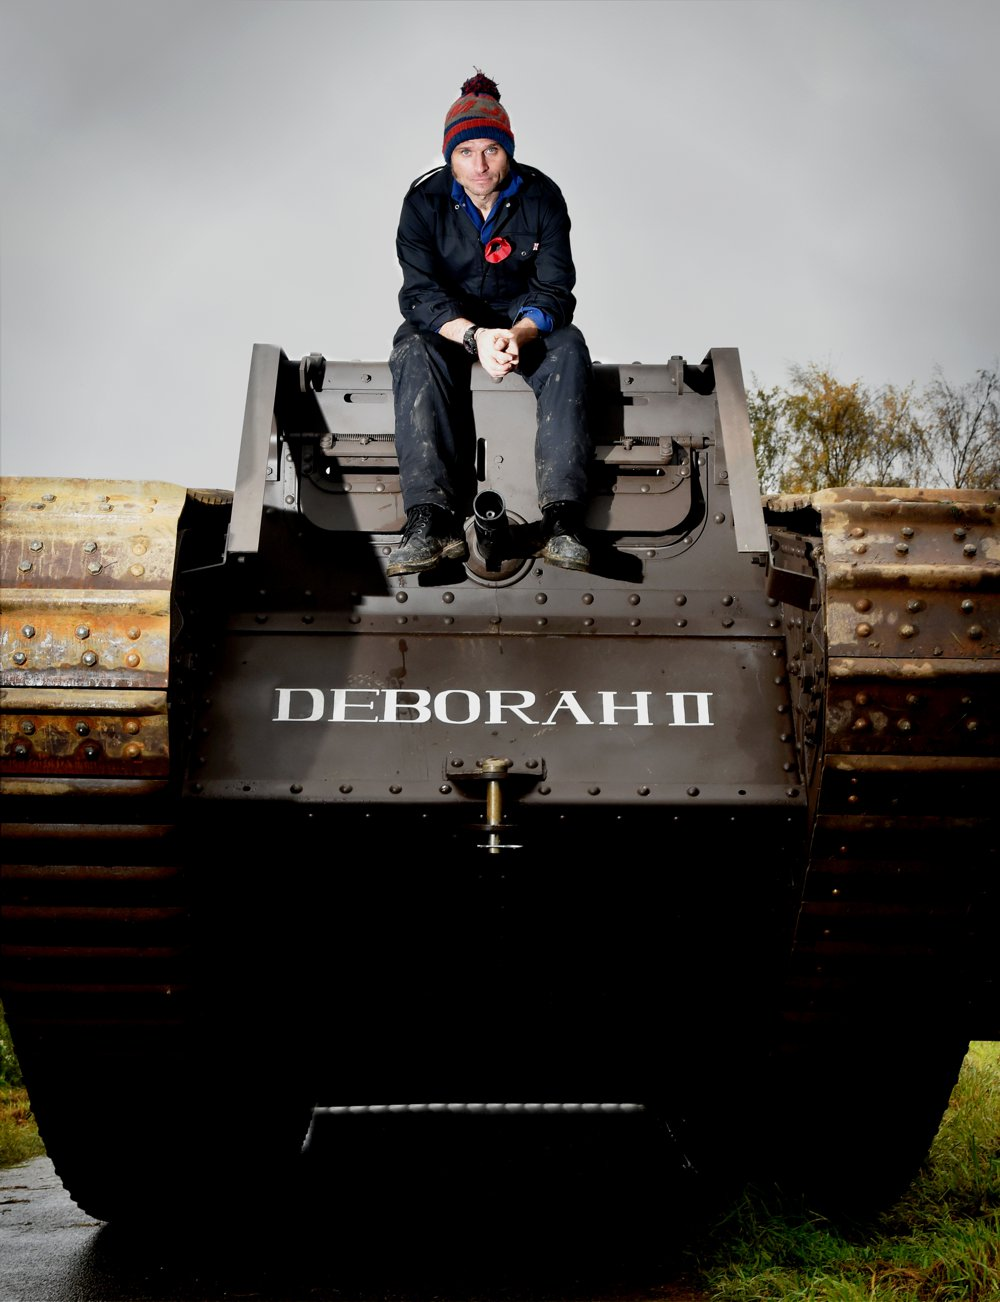 The replica tank itself will return to the UK and will remain at the Norfolk Museum. There it will form the centrepiece of an impressive World War One display and act as a lasting tribute to the brave crews who lost their lives in the conflict.